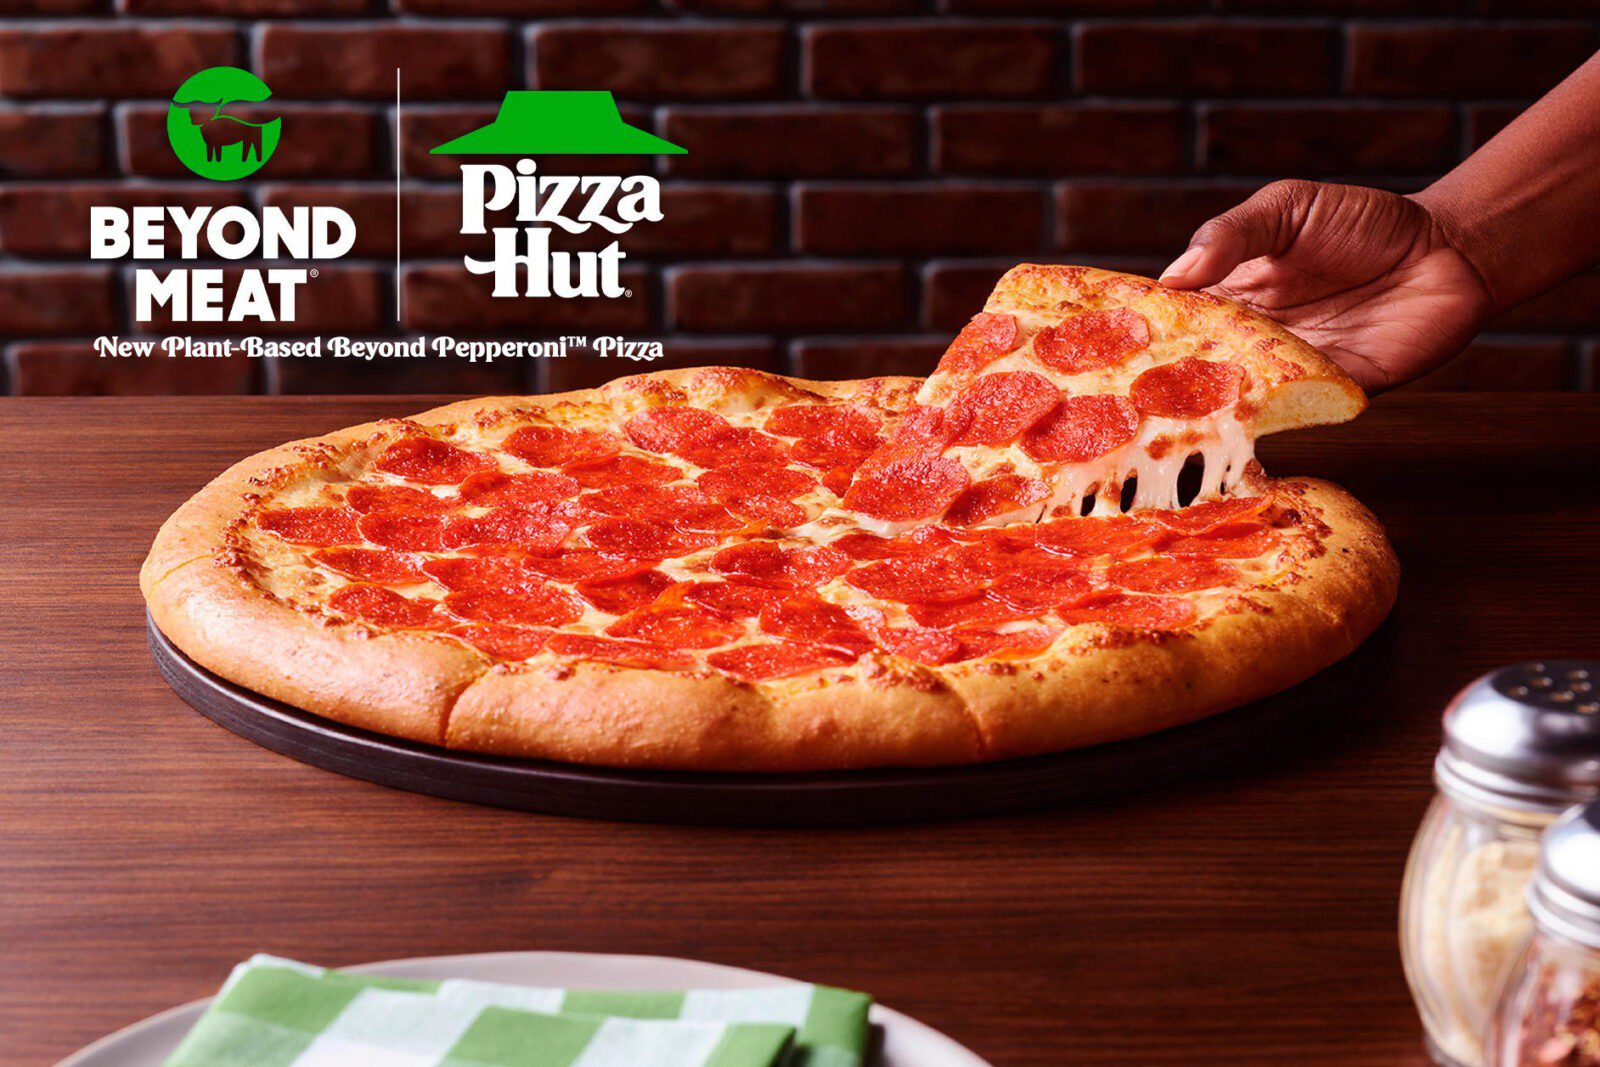 Pizza Hut & Beyond Meat - Test Pepperoni Pizza